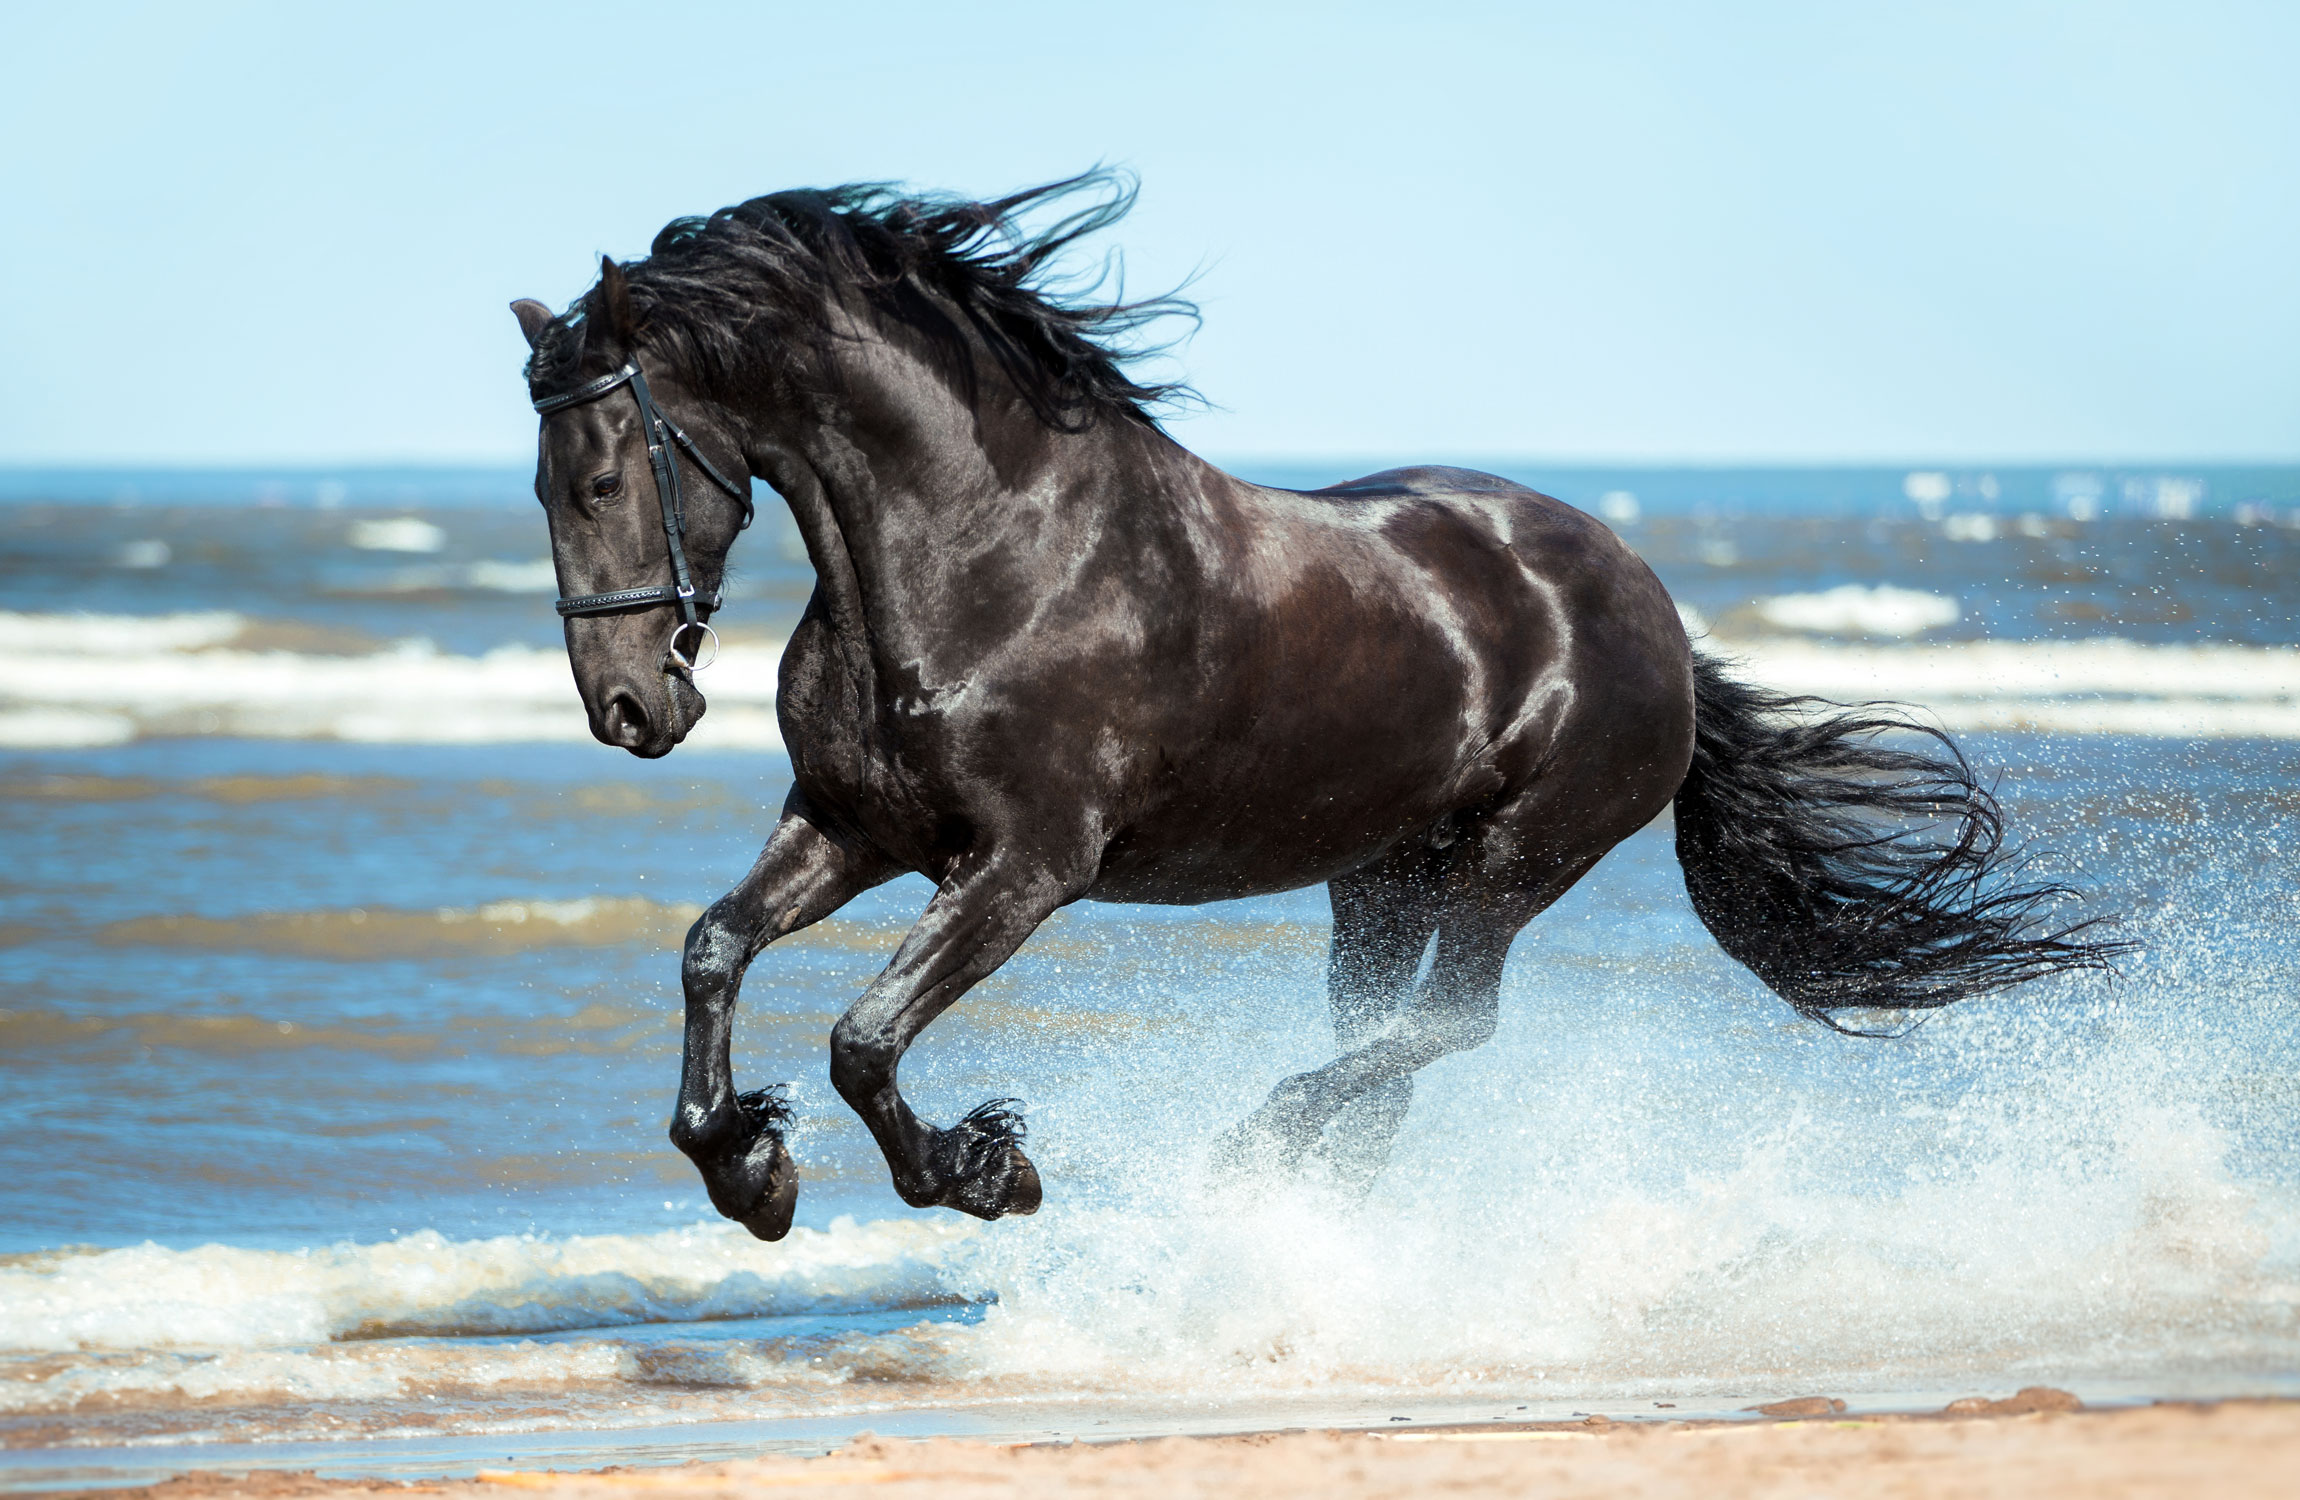 The Fairy Tale Friesian